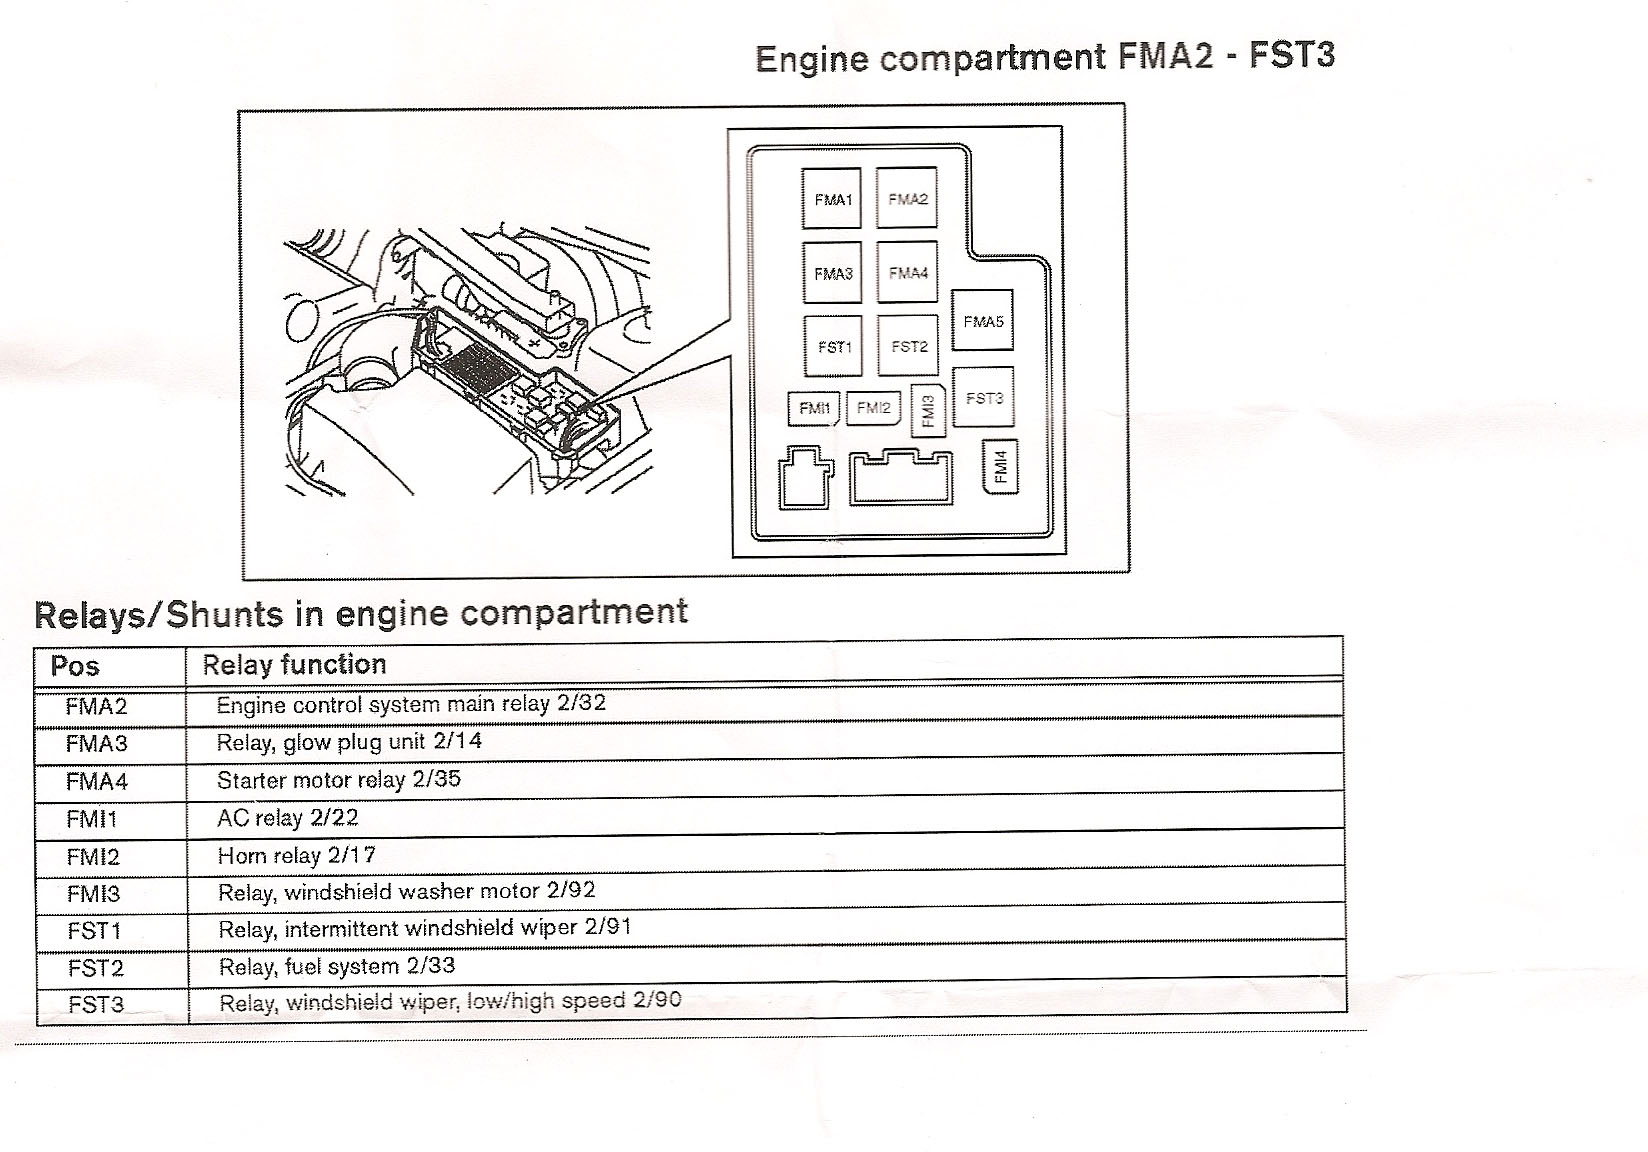 2004 volvo s60 wiring schematic we 4908  wiring diagram for volvo xc90 download diagram  we 4908  wiring diagram for volvo xc90